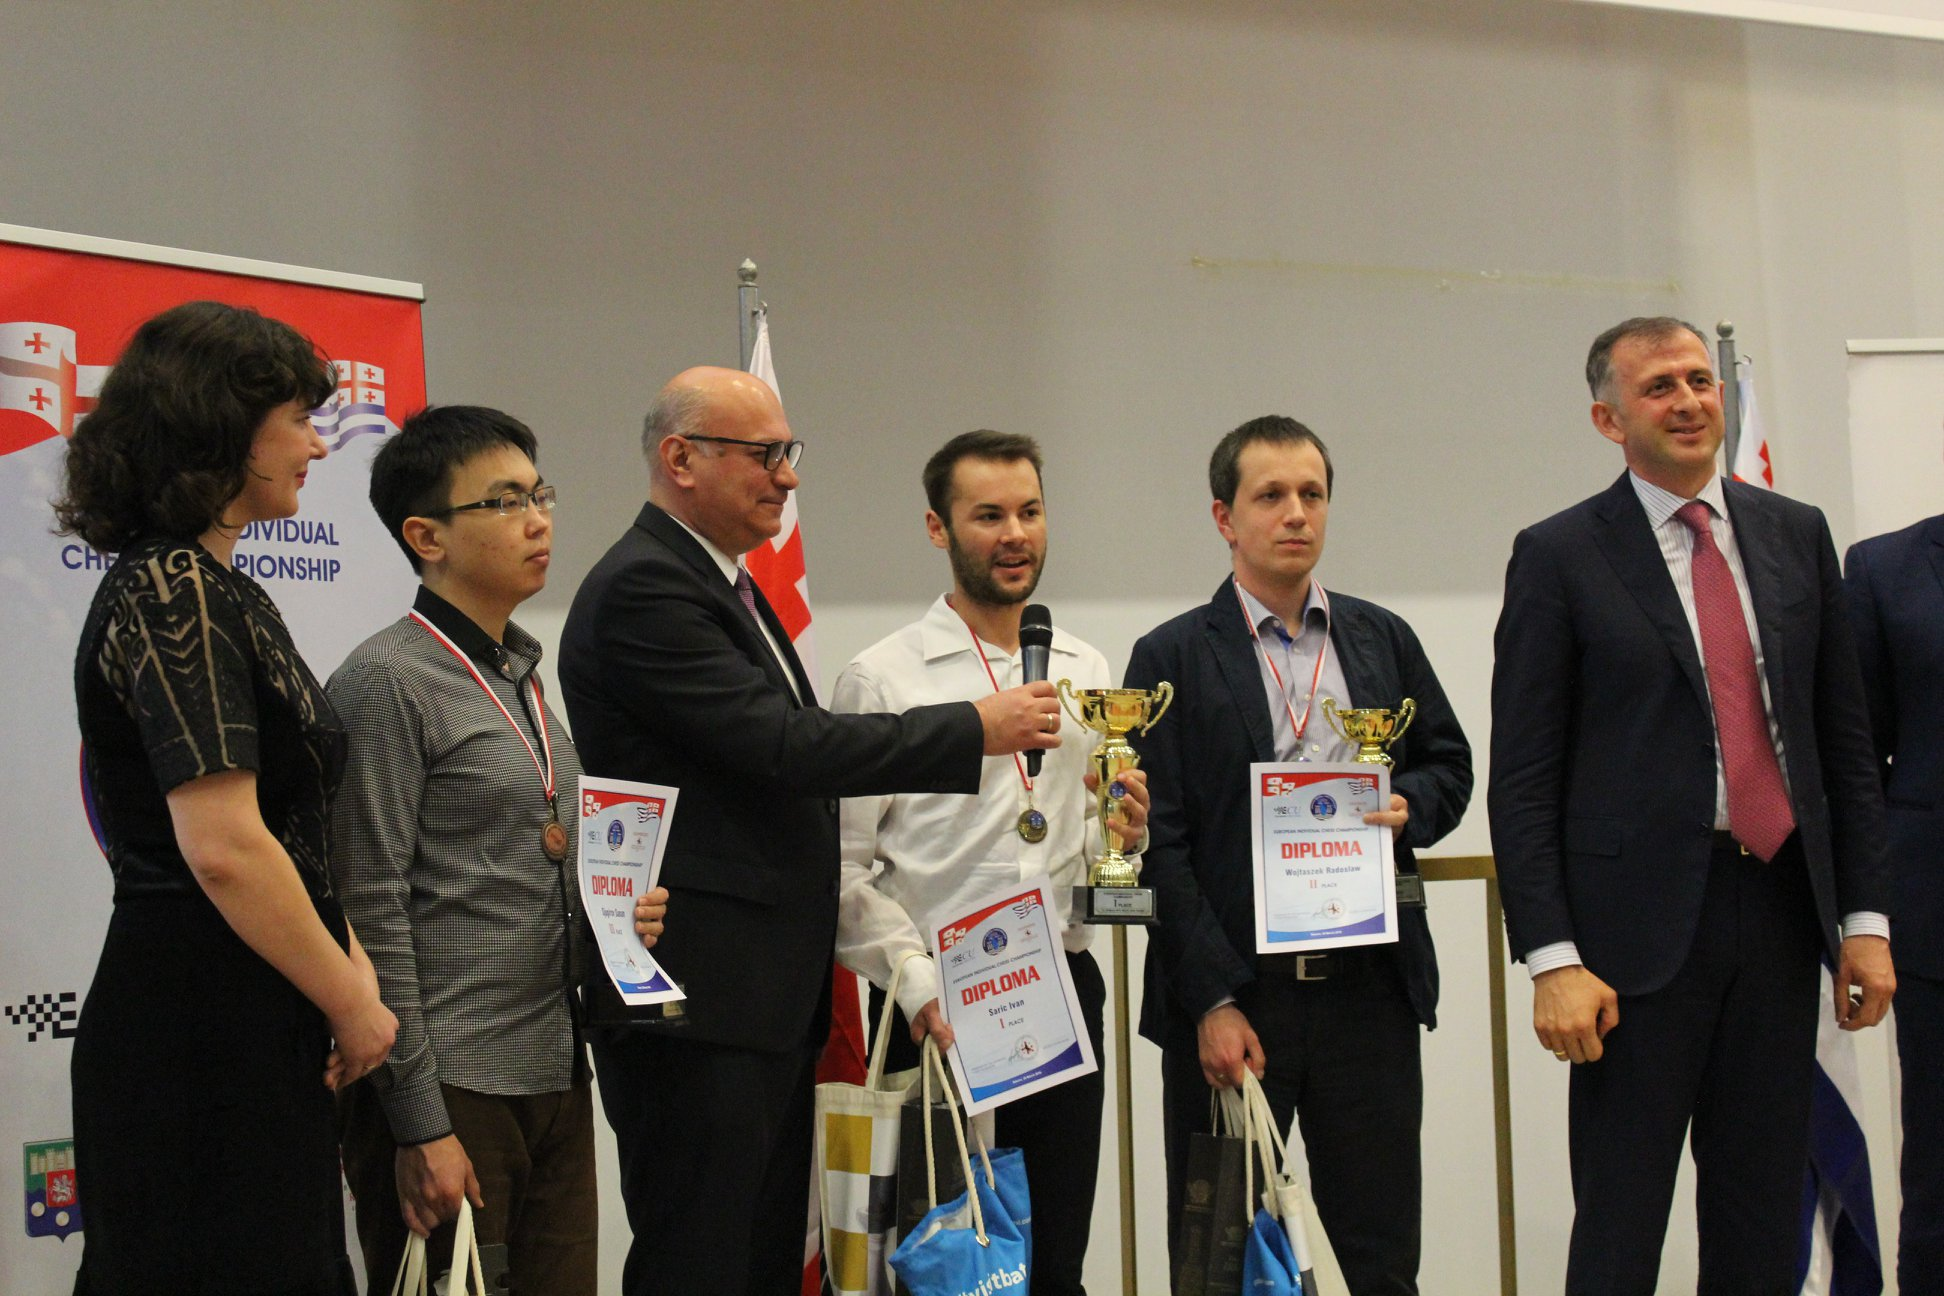 Ivan Saric talking during Closing Ceremony at the European Chess Championship